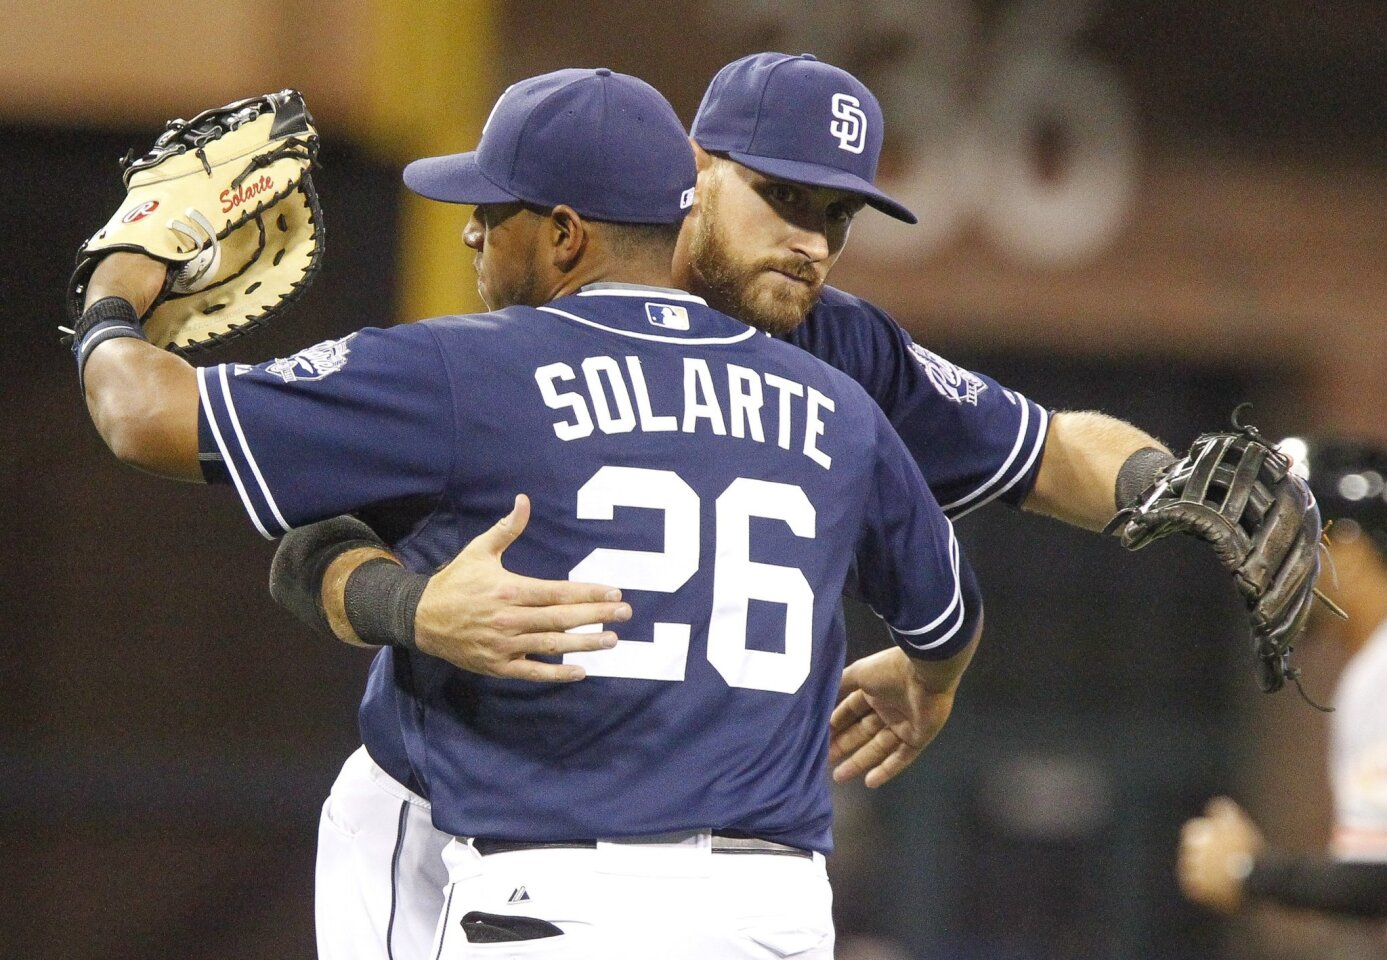 The Padres' Will Middlebrooks, right, and Yangervis Solarte hug as they celebrate the Padres 10-2 win over the Giants at Petco Park in San Diego on Saturday, April 11, 2015.